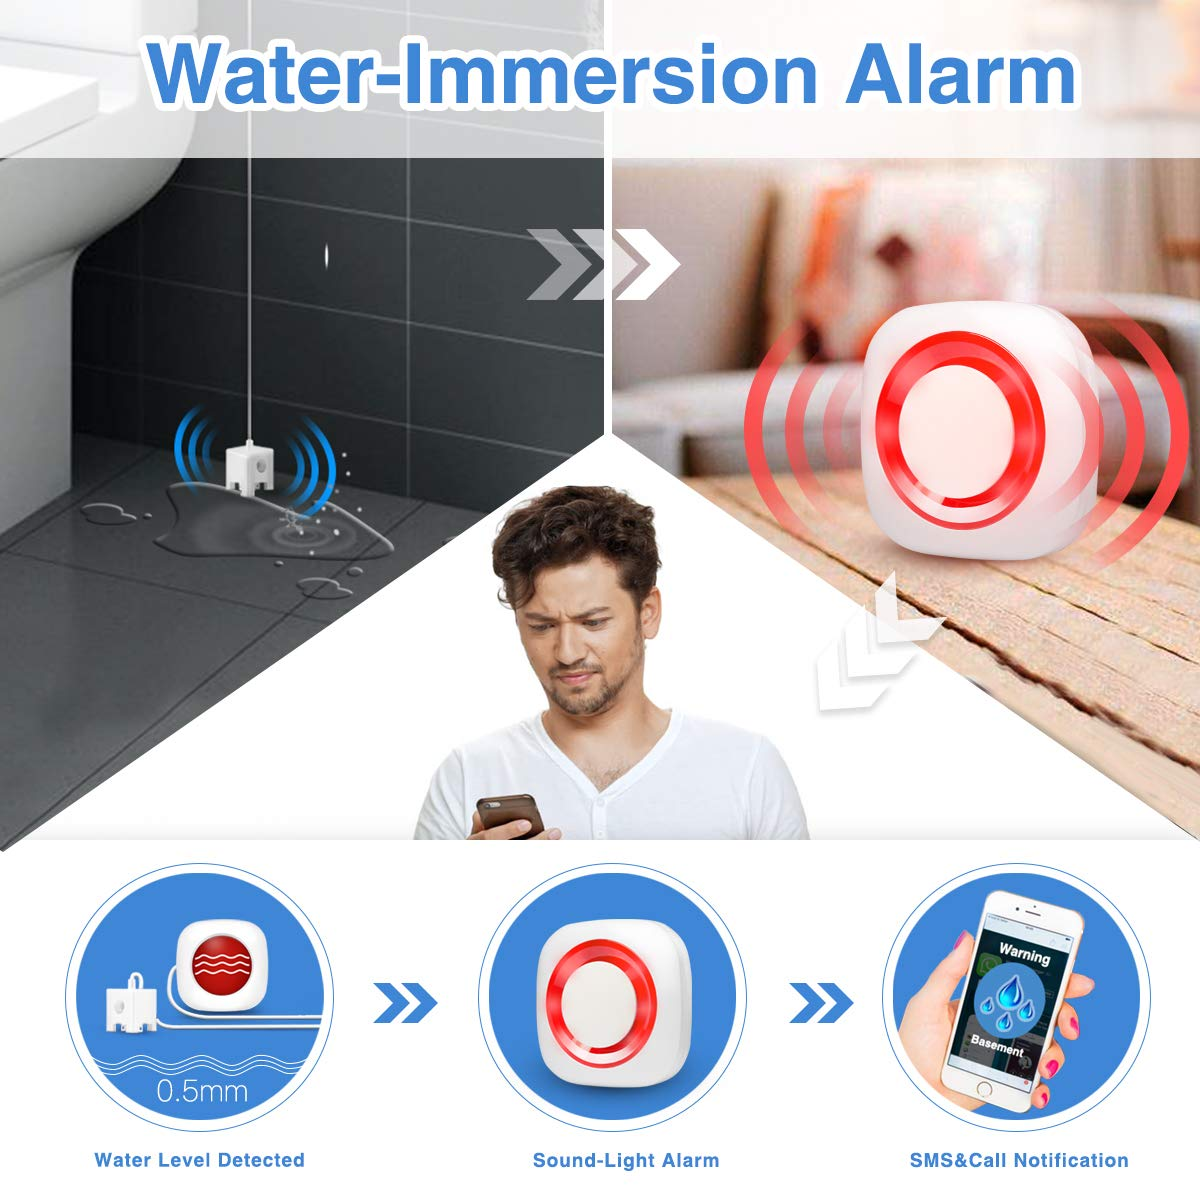 Smart GSM Water Sensor 2 Sensors, 1 Alarm Receiver Batter-Powered Flood /& Water Leakage Detector Alarm with Auto SMS Dial Alert for Warehouse Basement Pool Home Business Protection